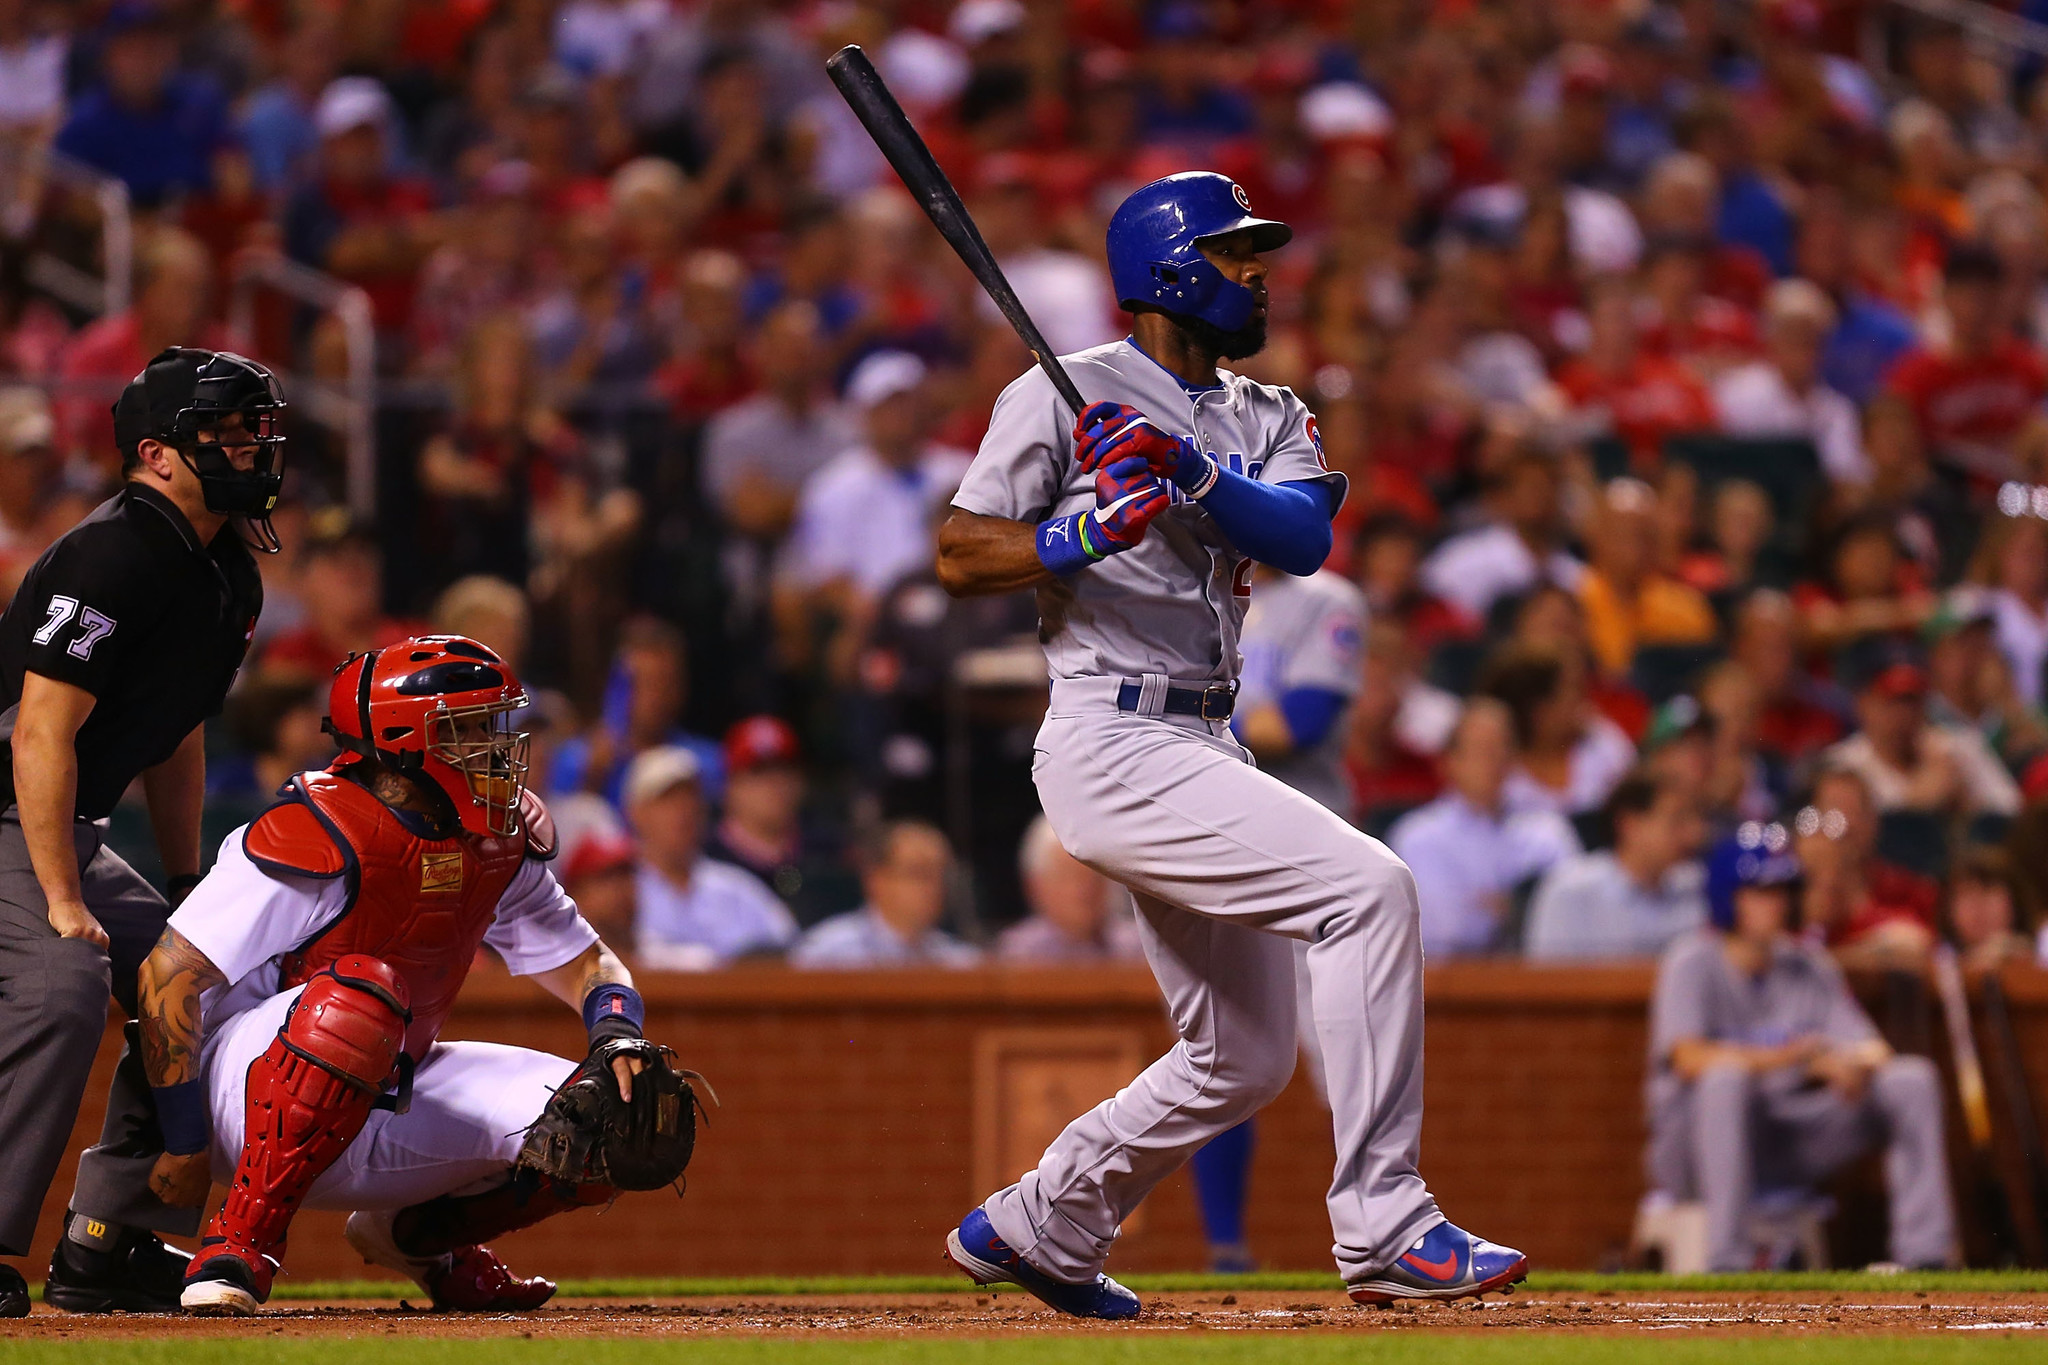 Ct-cubs-similar-to-indians-notes-spt-0926-20170925